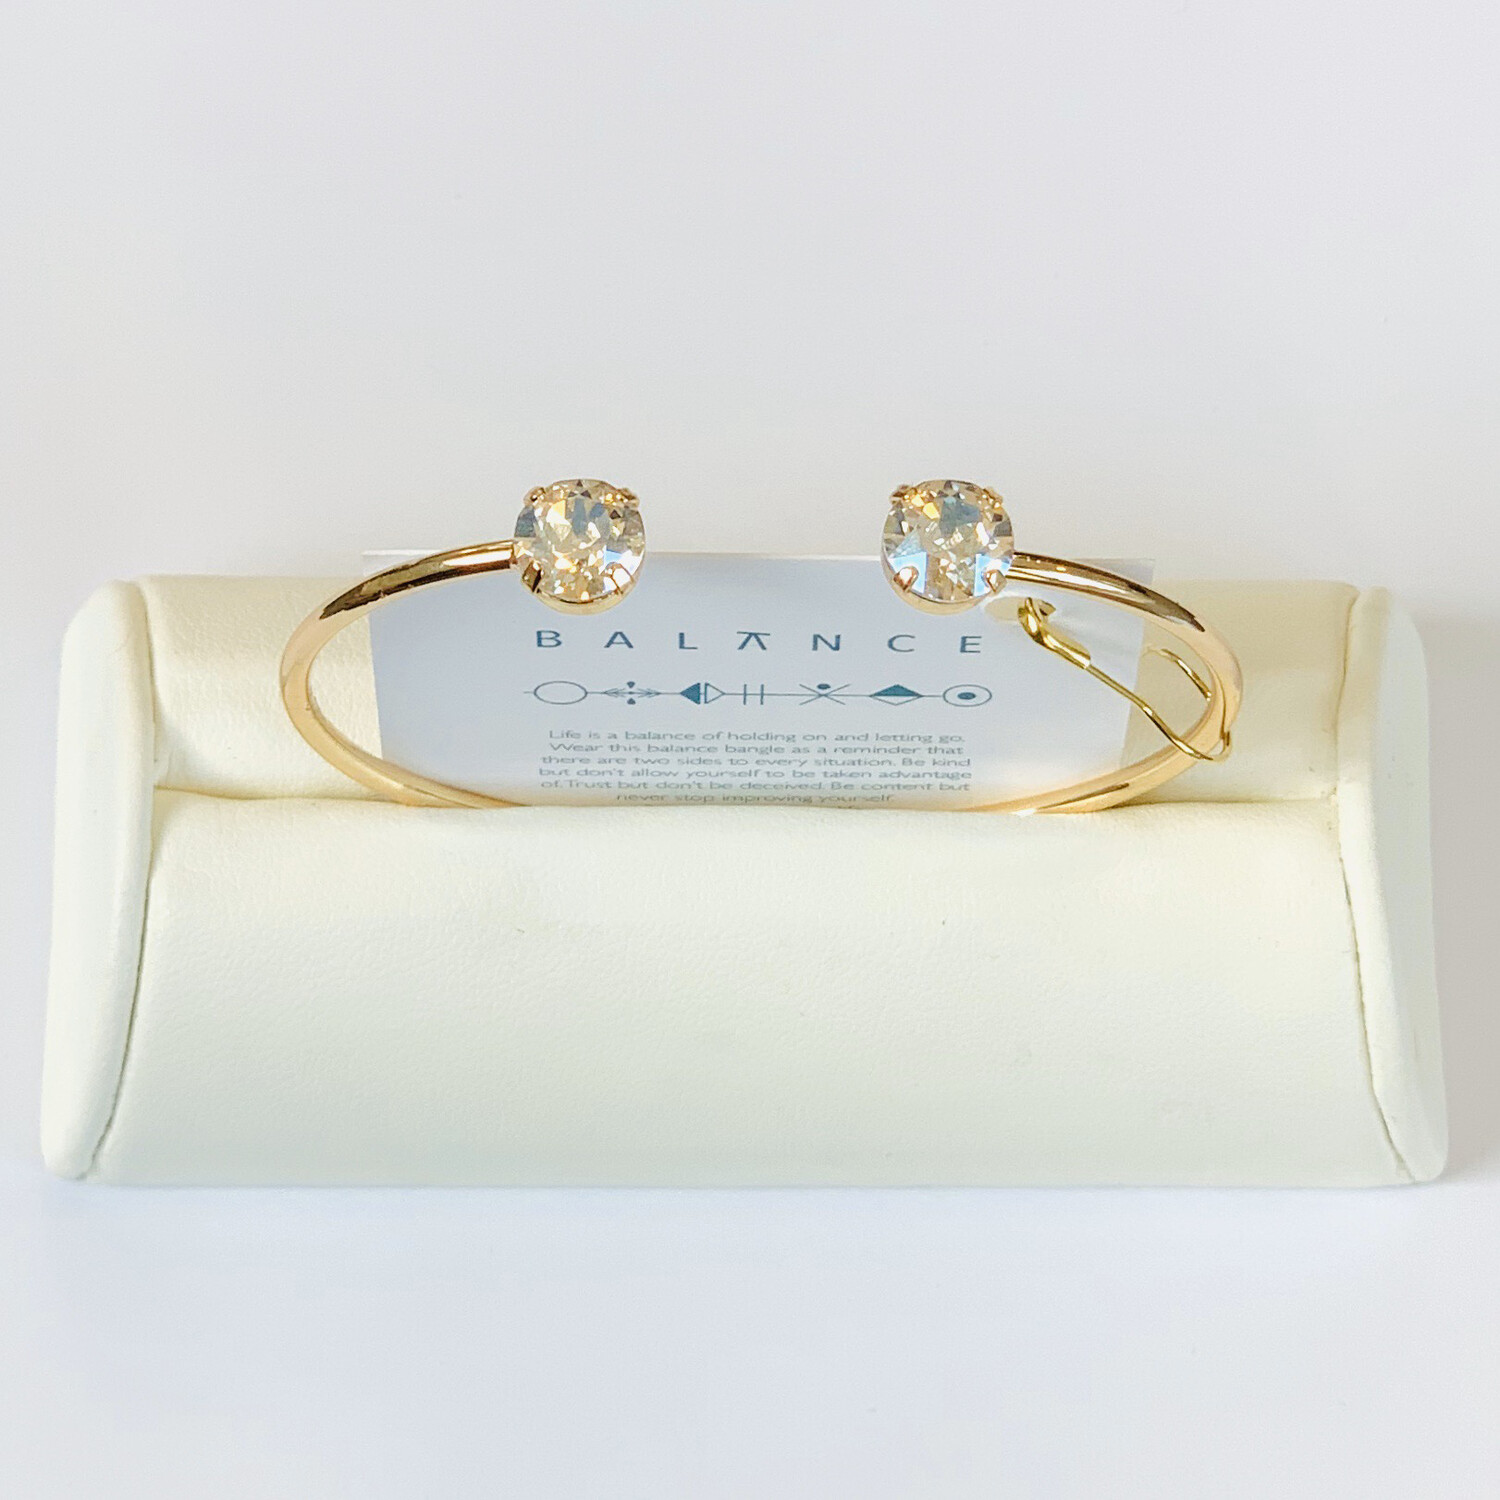 Balance Bracelet Gold/Crystal Moonlight